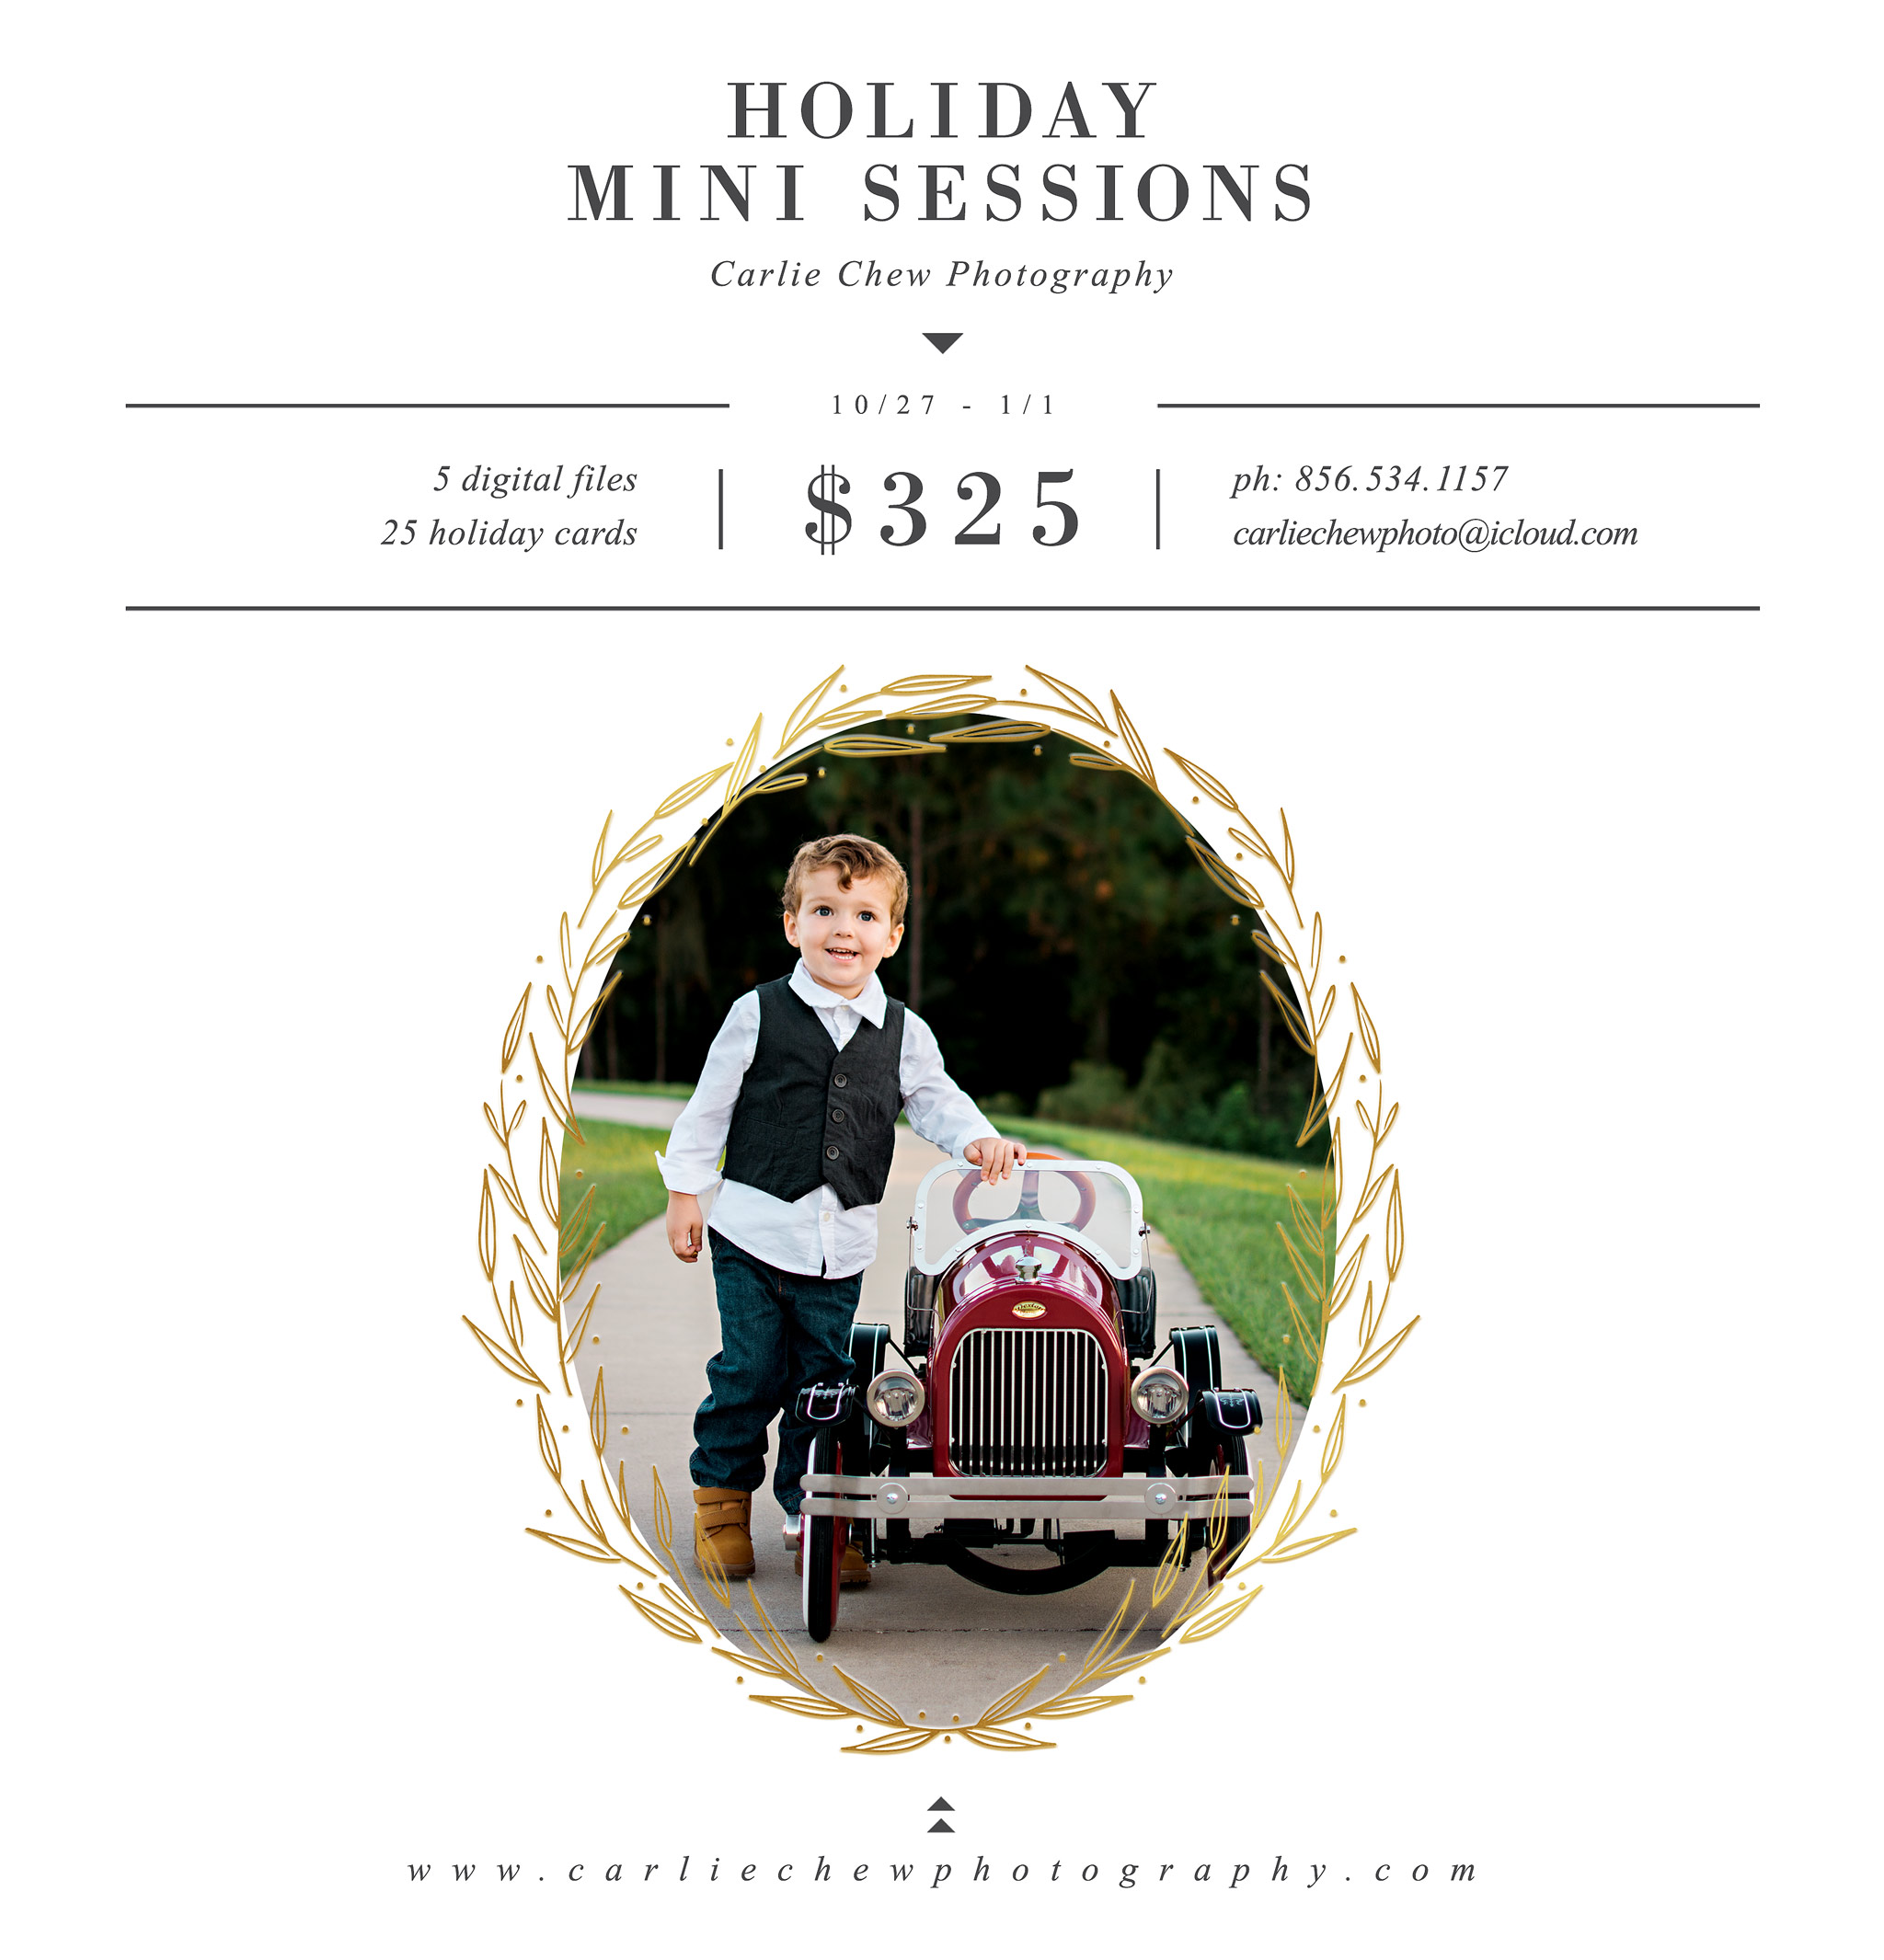 Holiday Mini Session photos taken at Fishhawk Ranch in Lithia Florida by Carlie Chew Photography